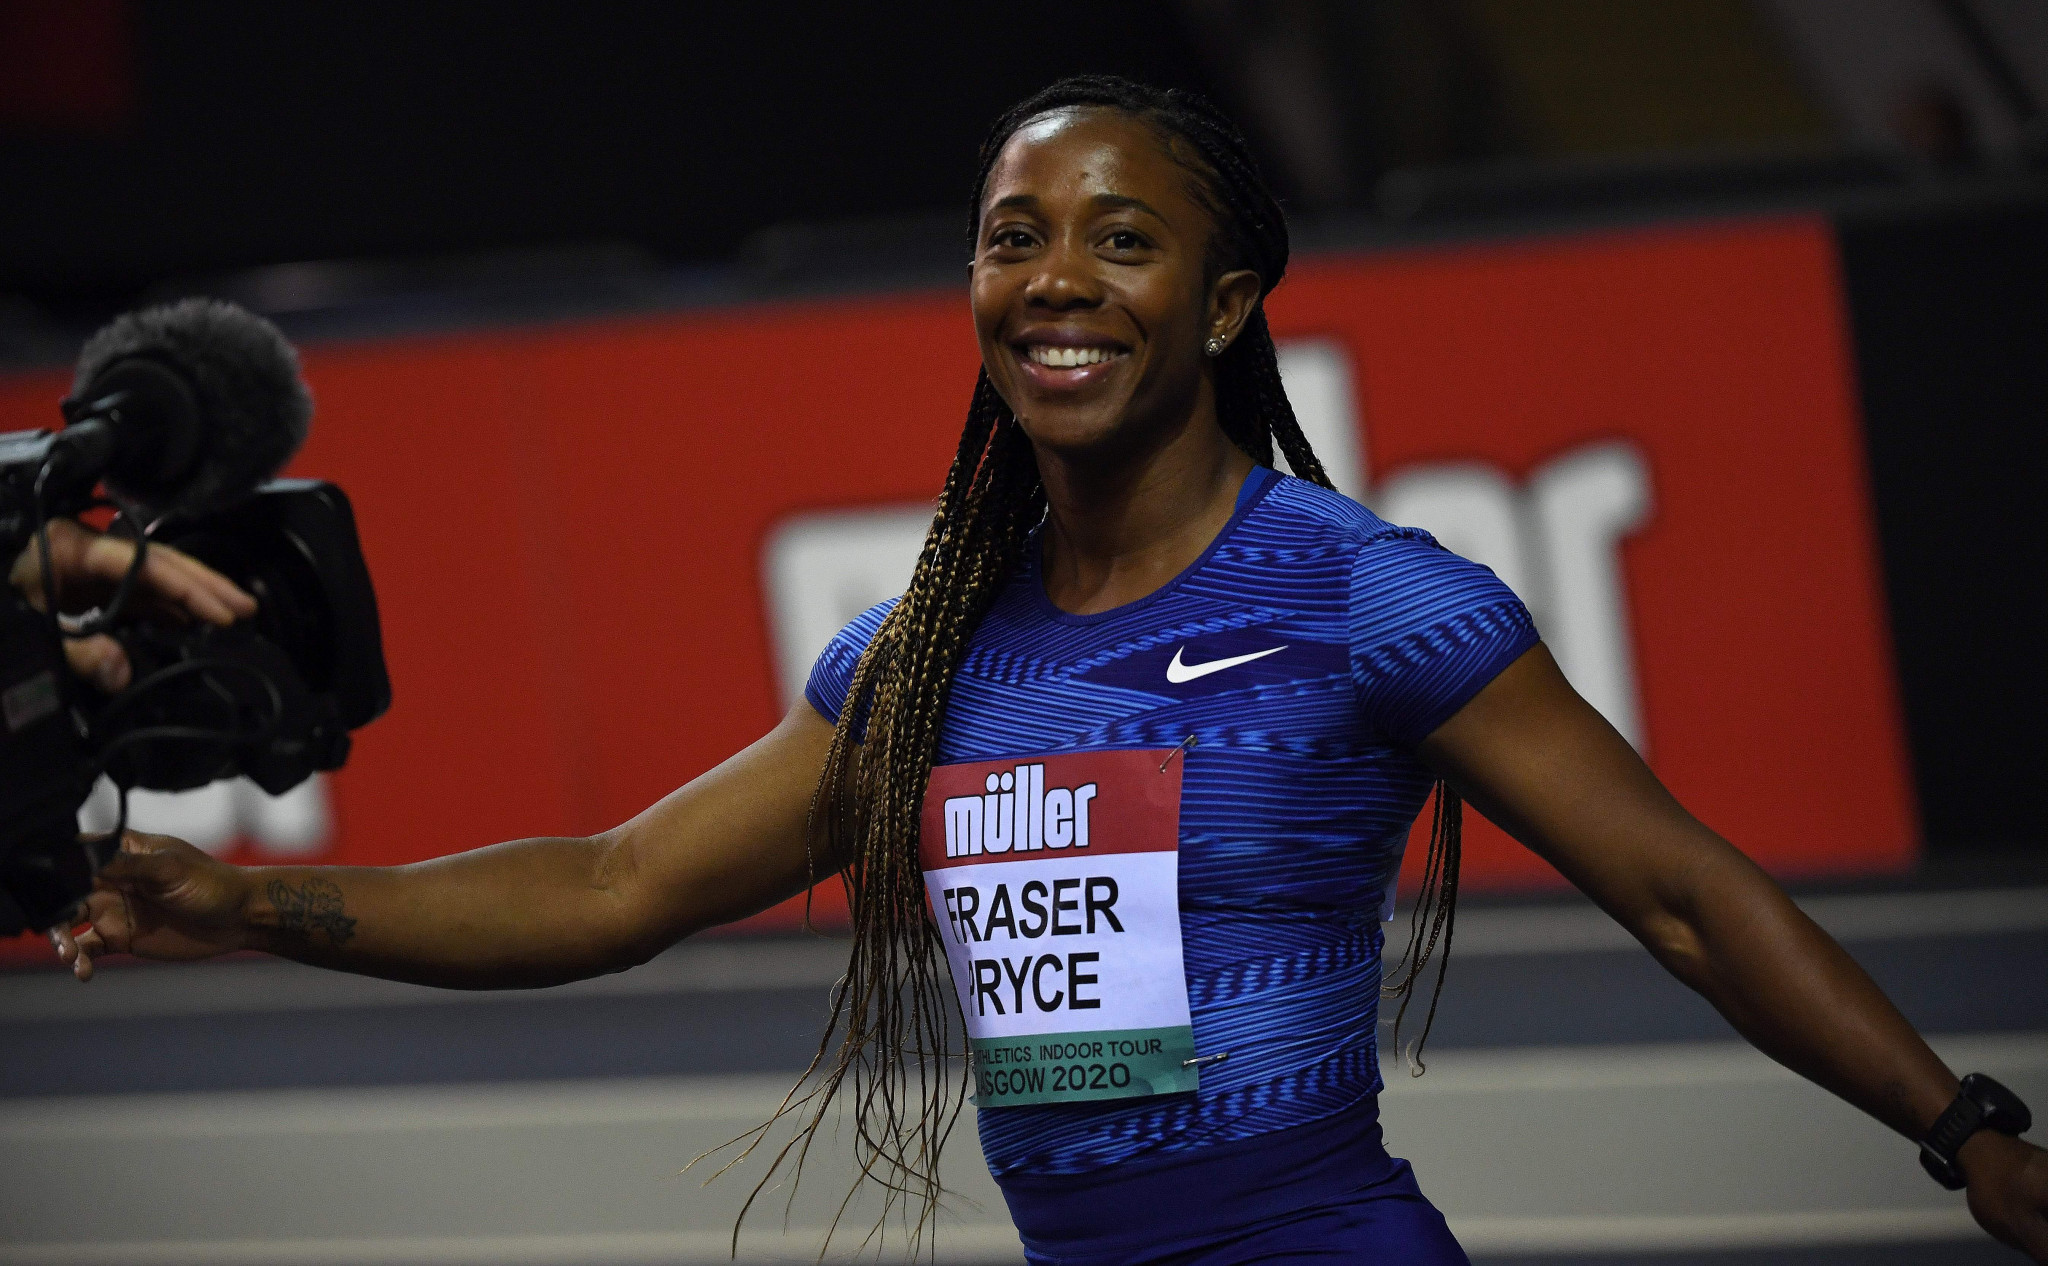 Shelly-Ann Fraser Pryce broke the six-year indoor unbeaten run by Murielle Ahoure ©Getty Images